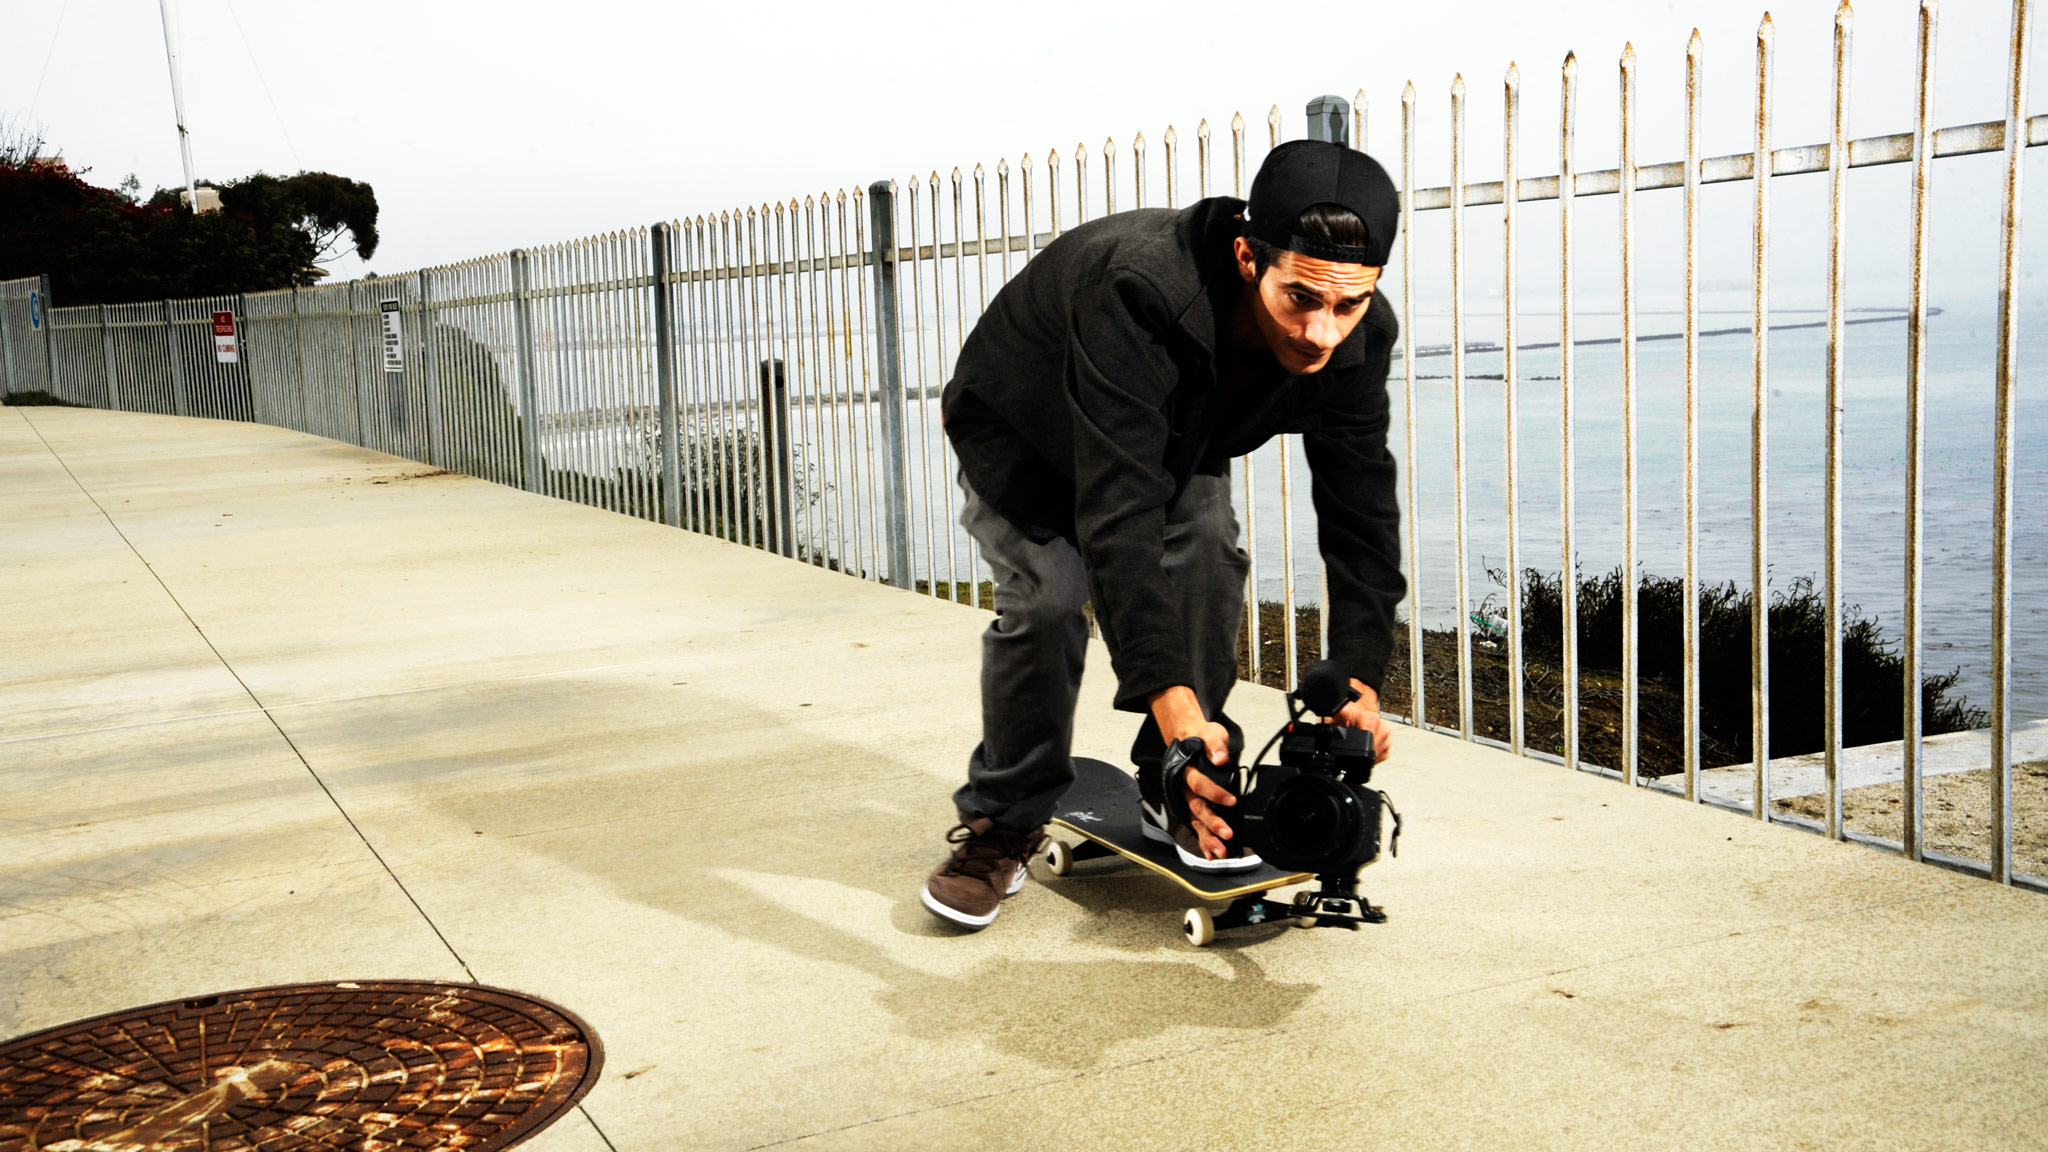 Nigel Alexander in his pursuit of daily skate footage.